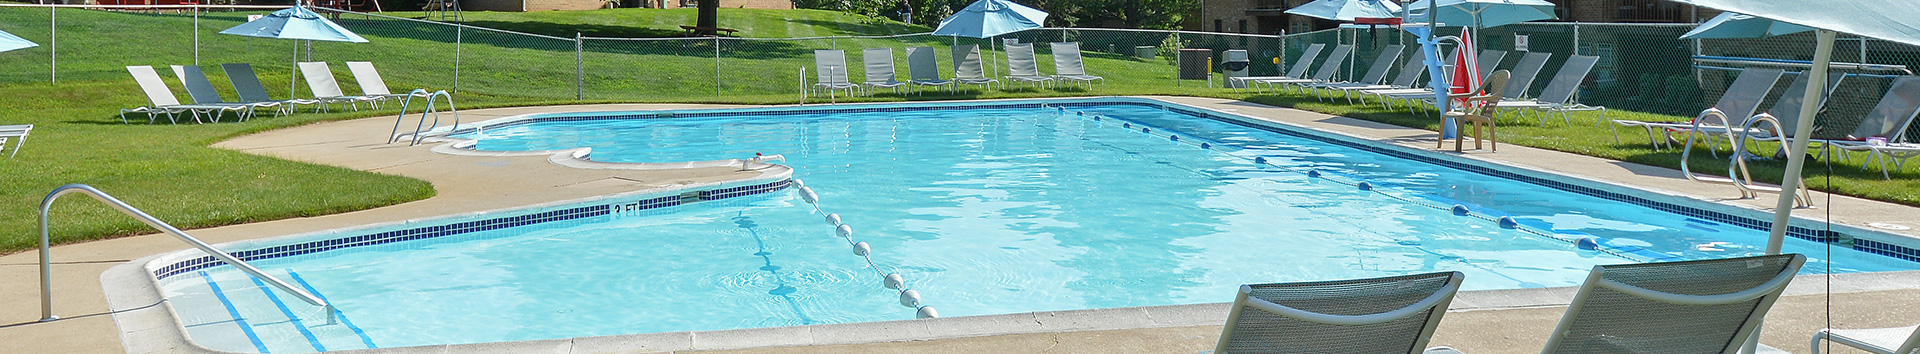 Swimming Pool of of Powder Mill Apartments at Manor Communities, York/Pennsylvania